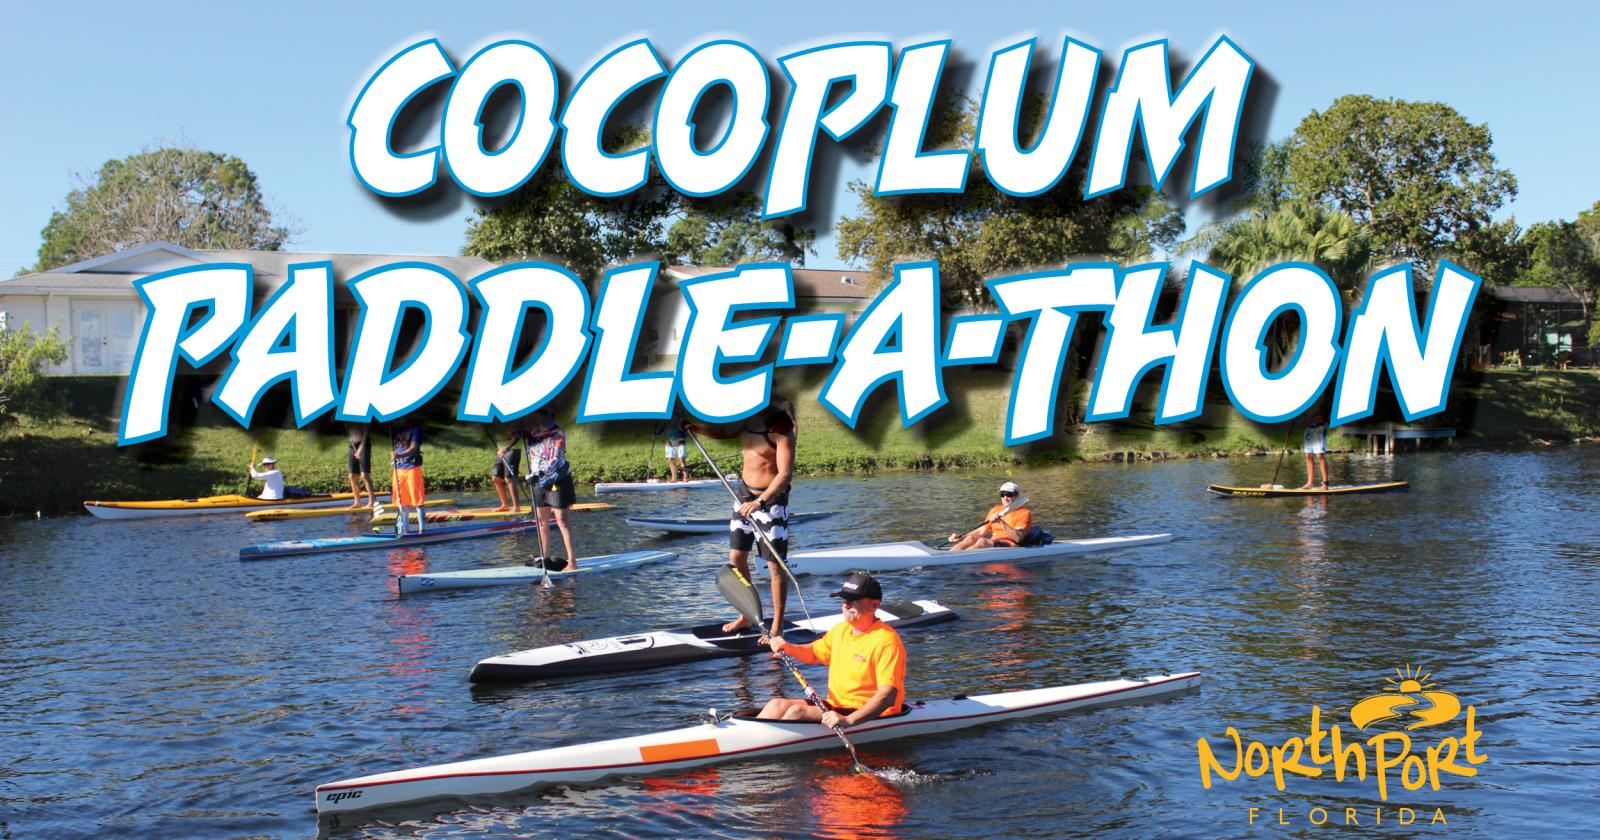 Social media graphic for Cocoplum Paddle-a-thon with photo of people kayaking on blueways in North Port